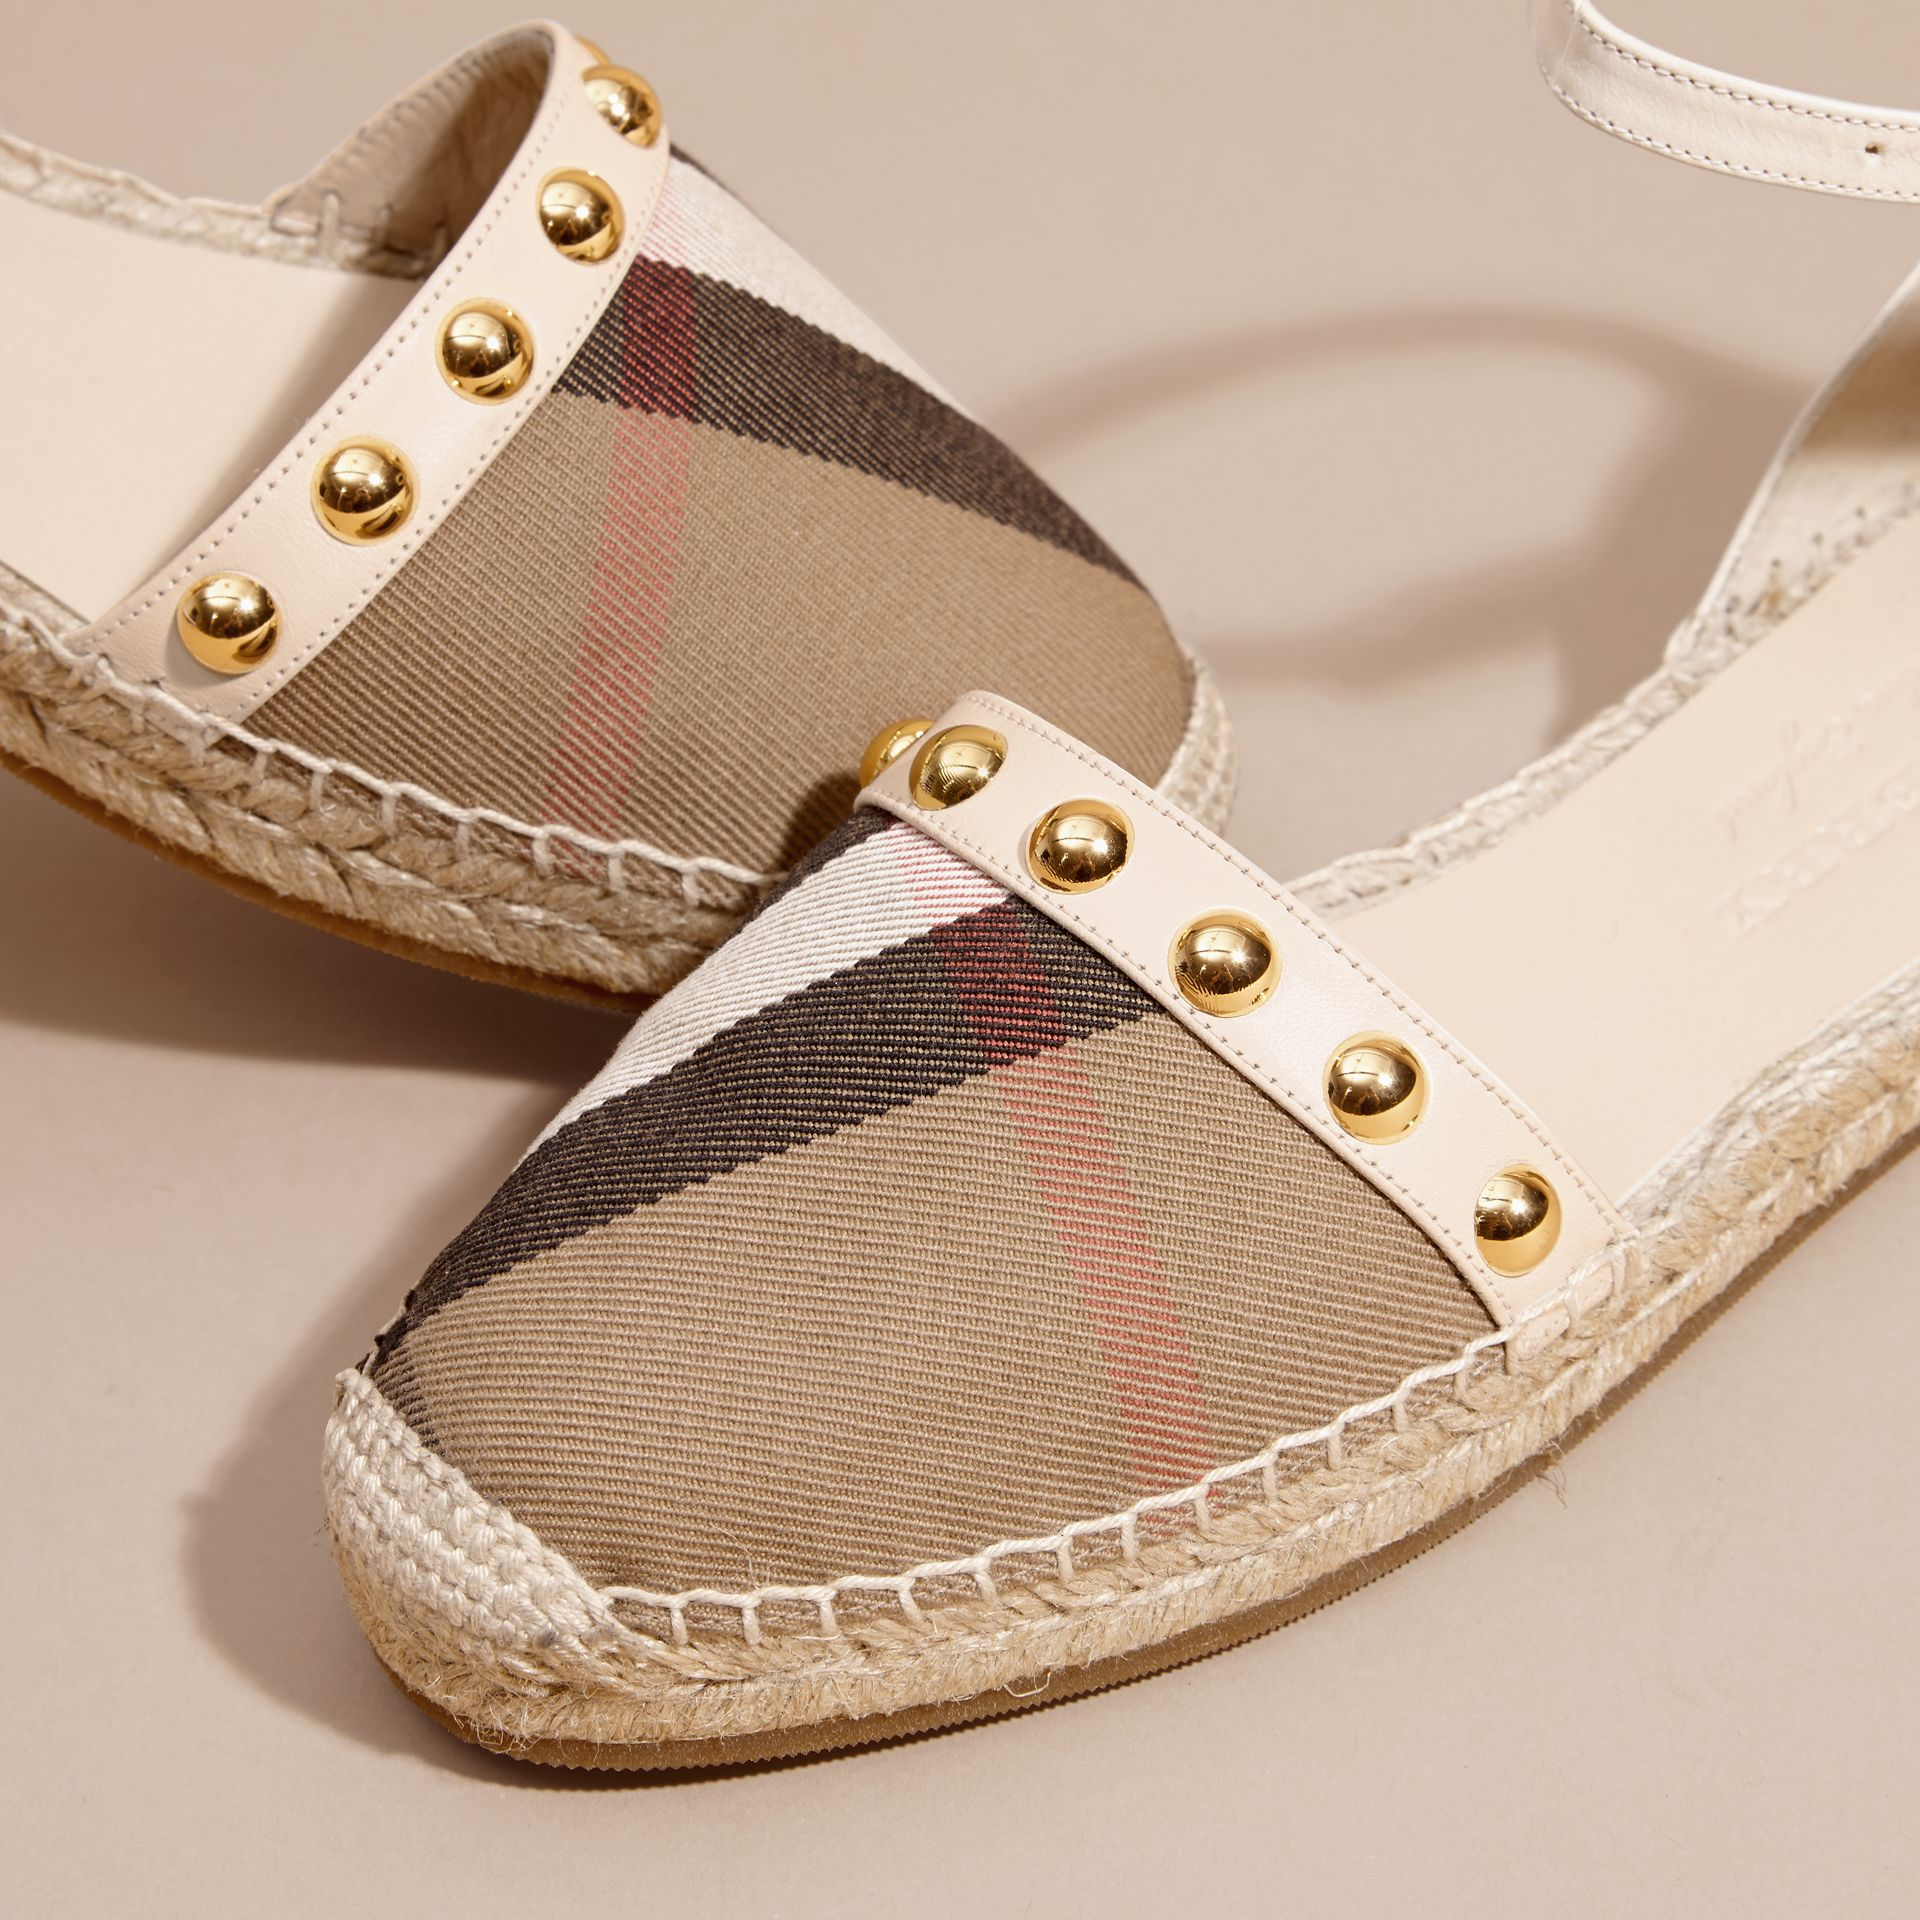 Cream Studded Leather and House Check Espadrille Sandals Cream - gallery image 2